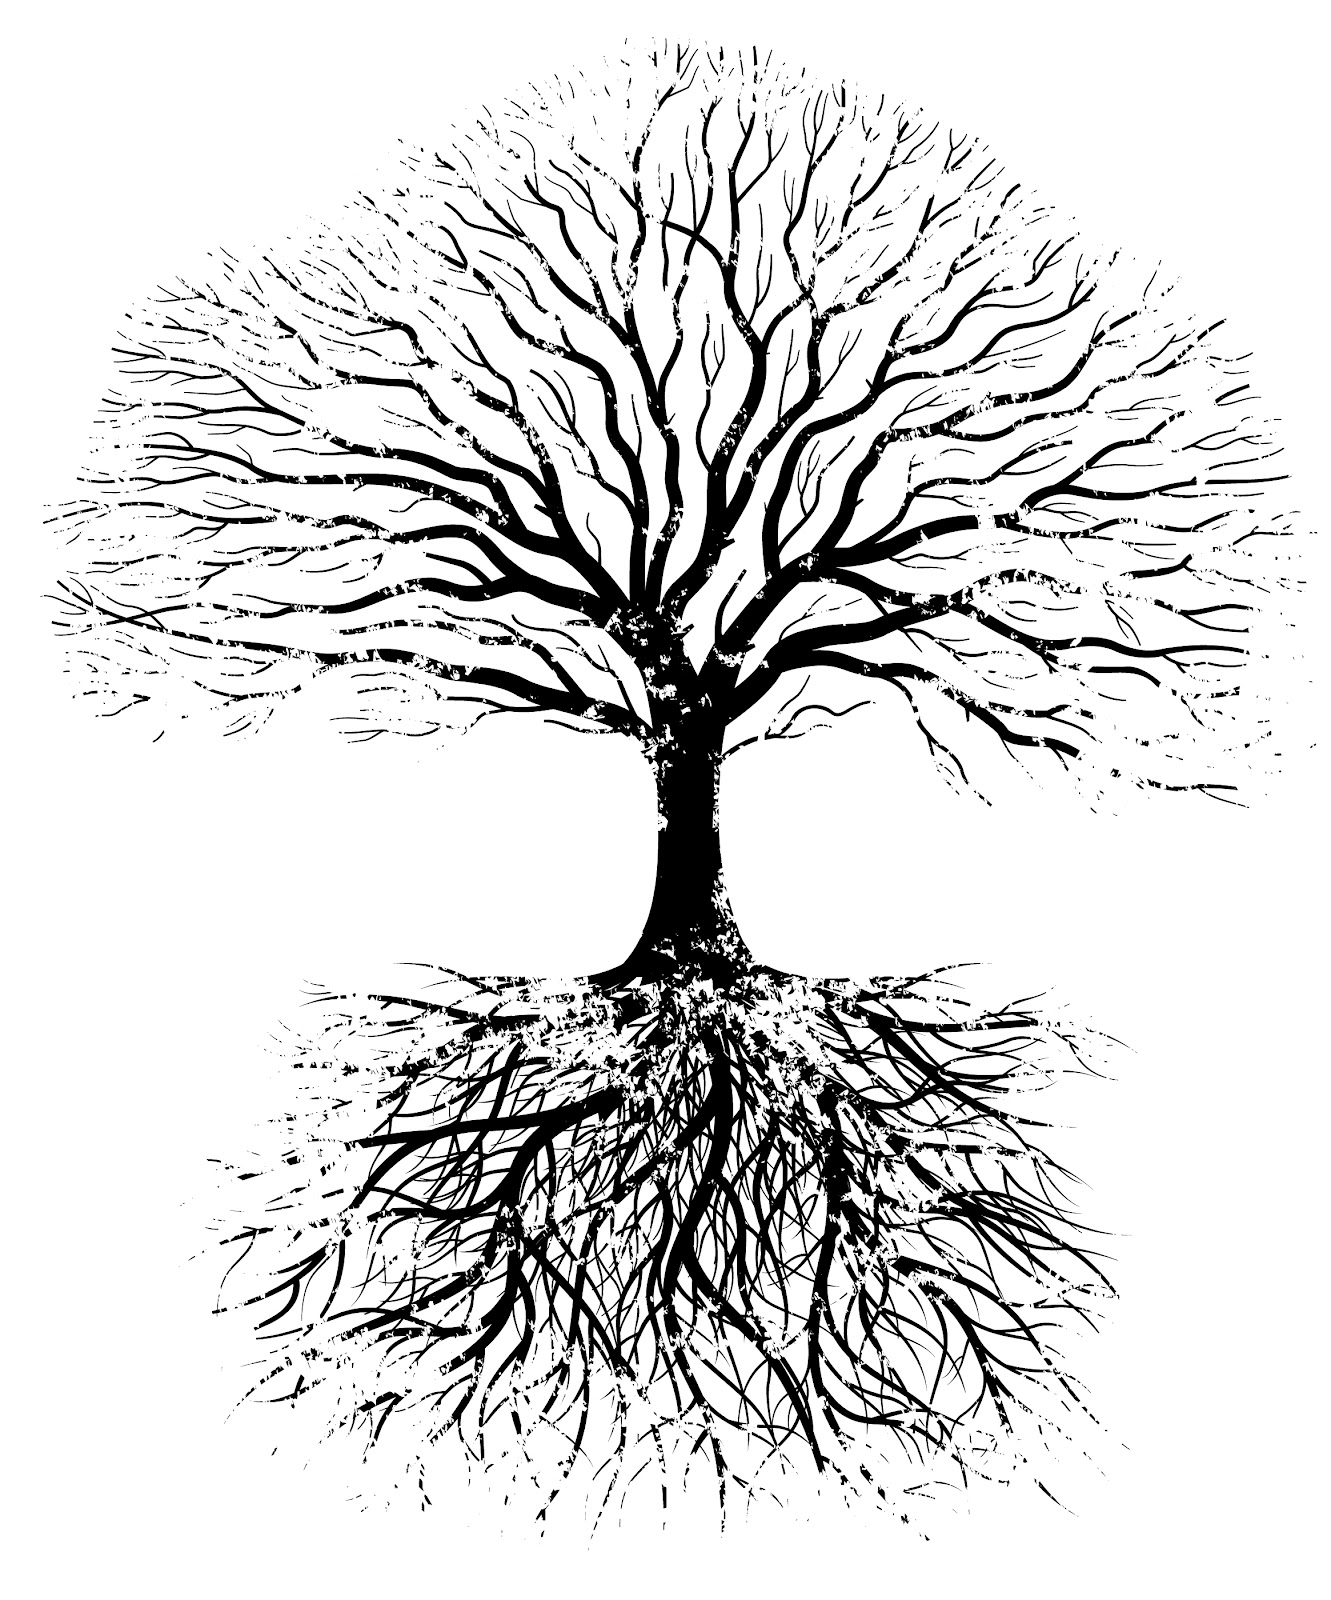 Tree Roots Clipart Black And White